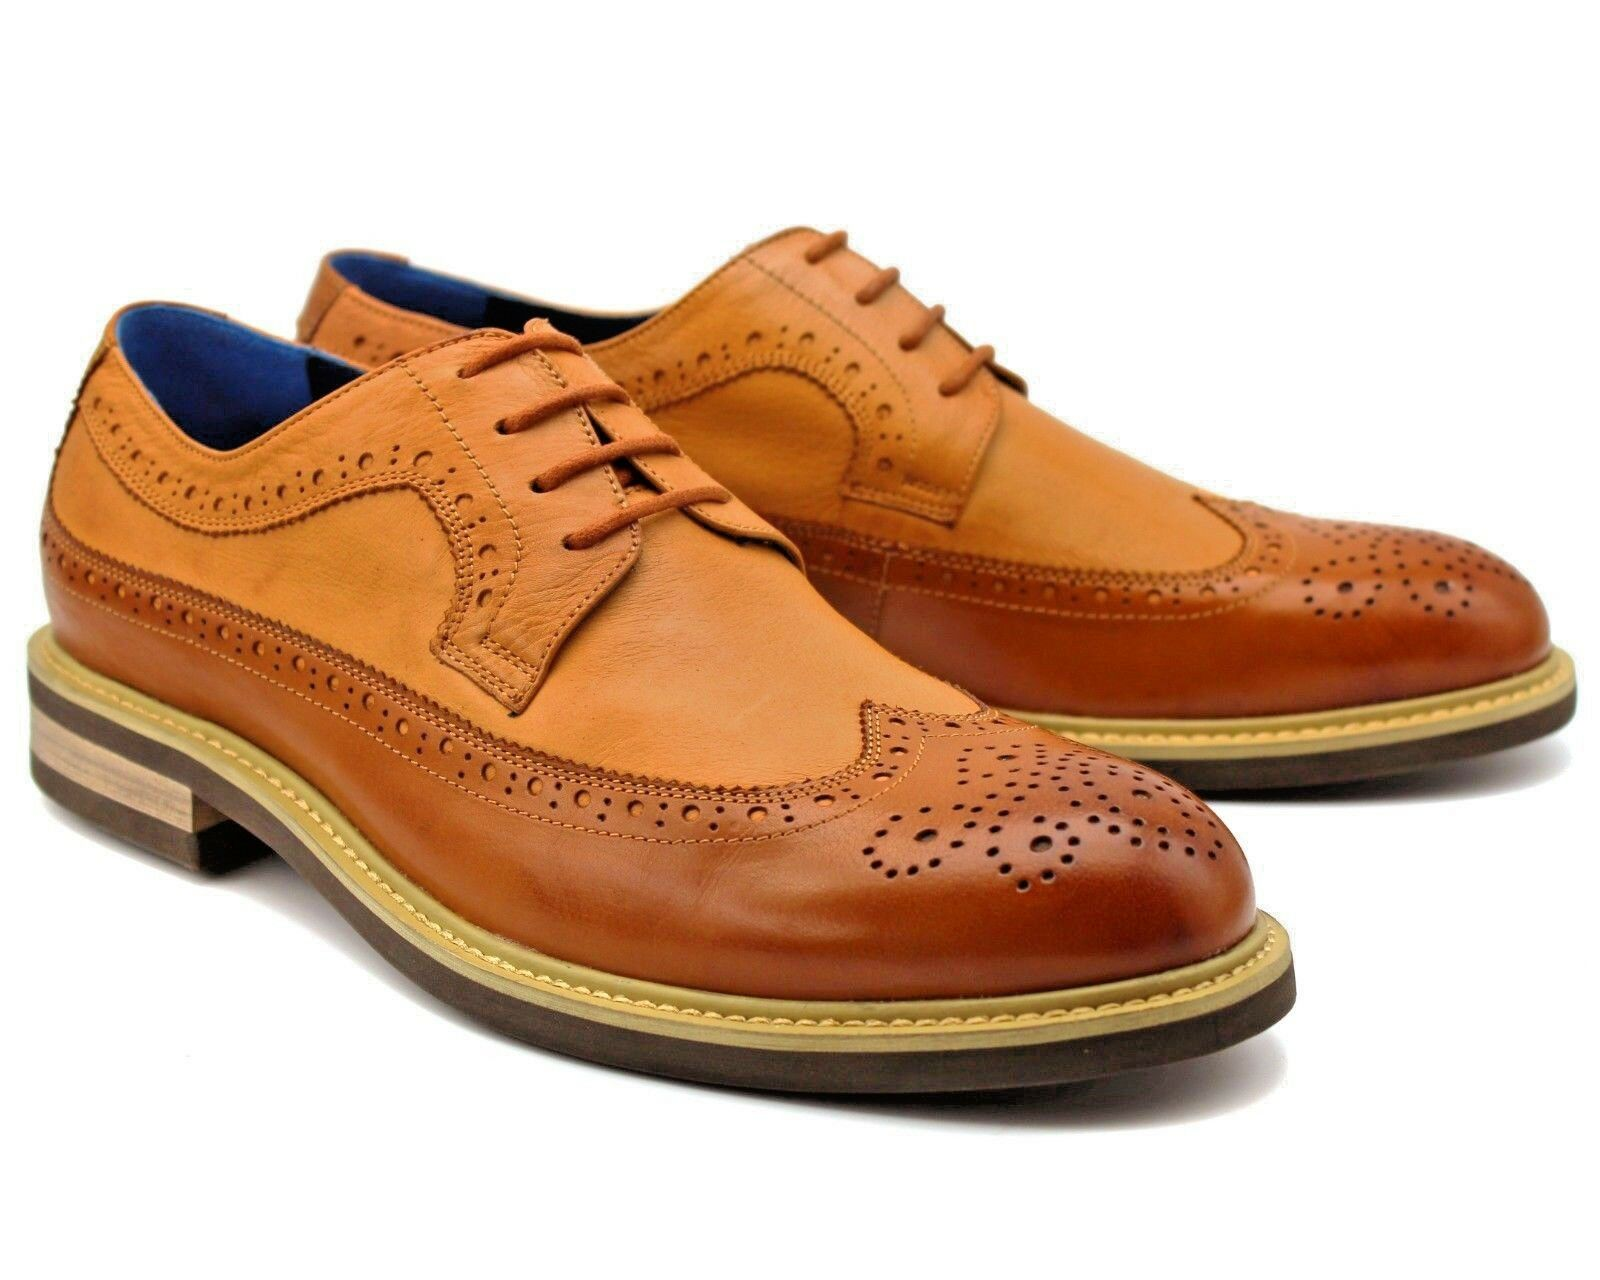 SD1 NEW MENS BROWN BROGUE SHOES LACE UP REAL LEATHER CASUAL OFFICE